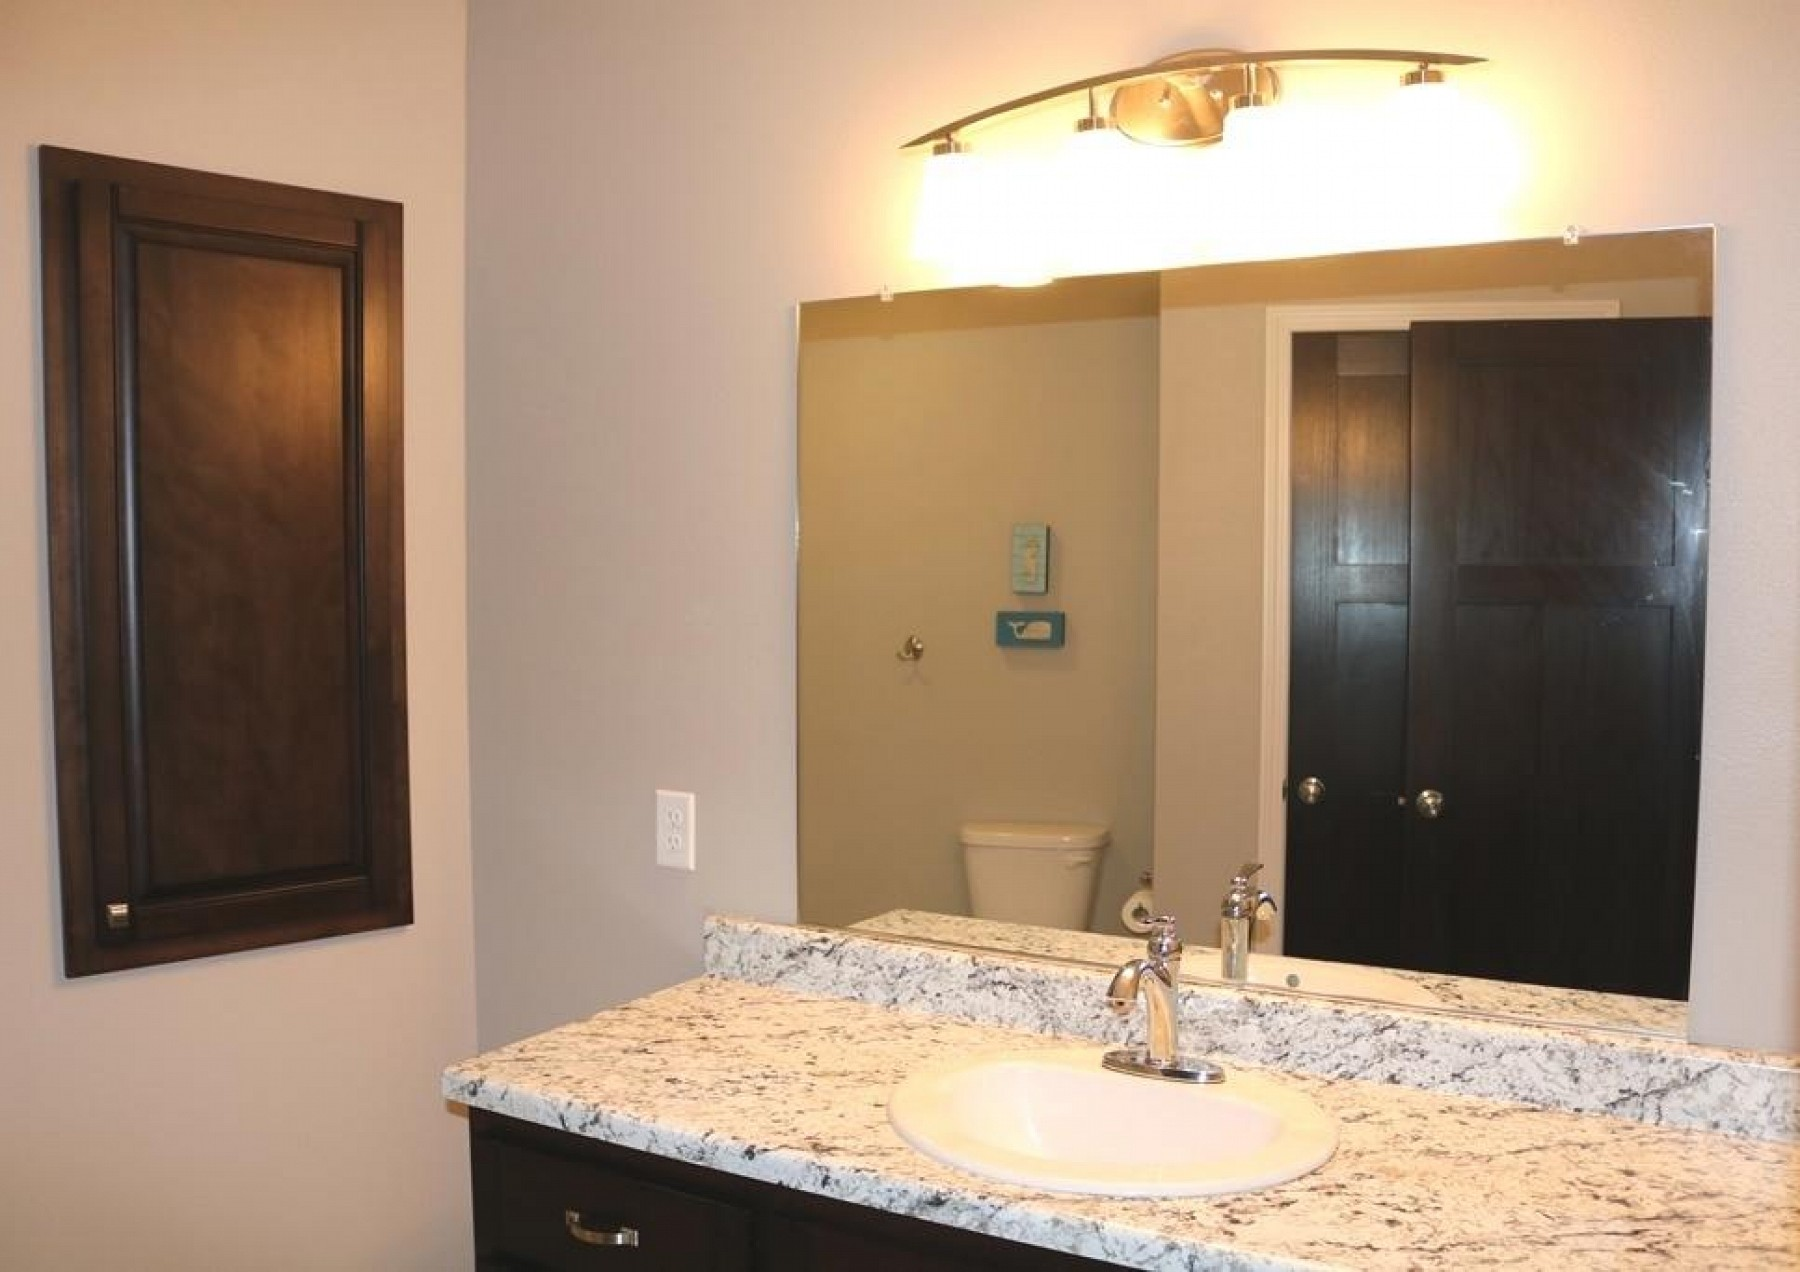 2312 Morning GloryDrive, Brookings, SD 57006